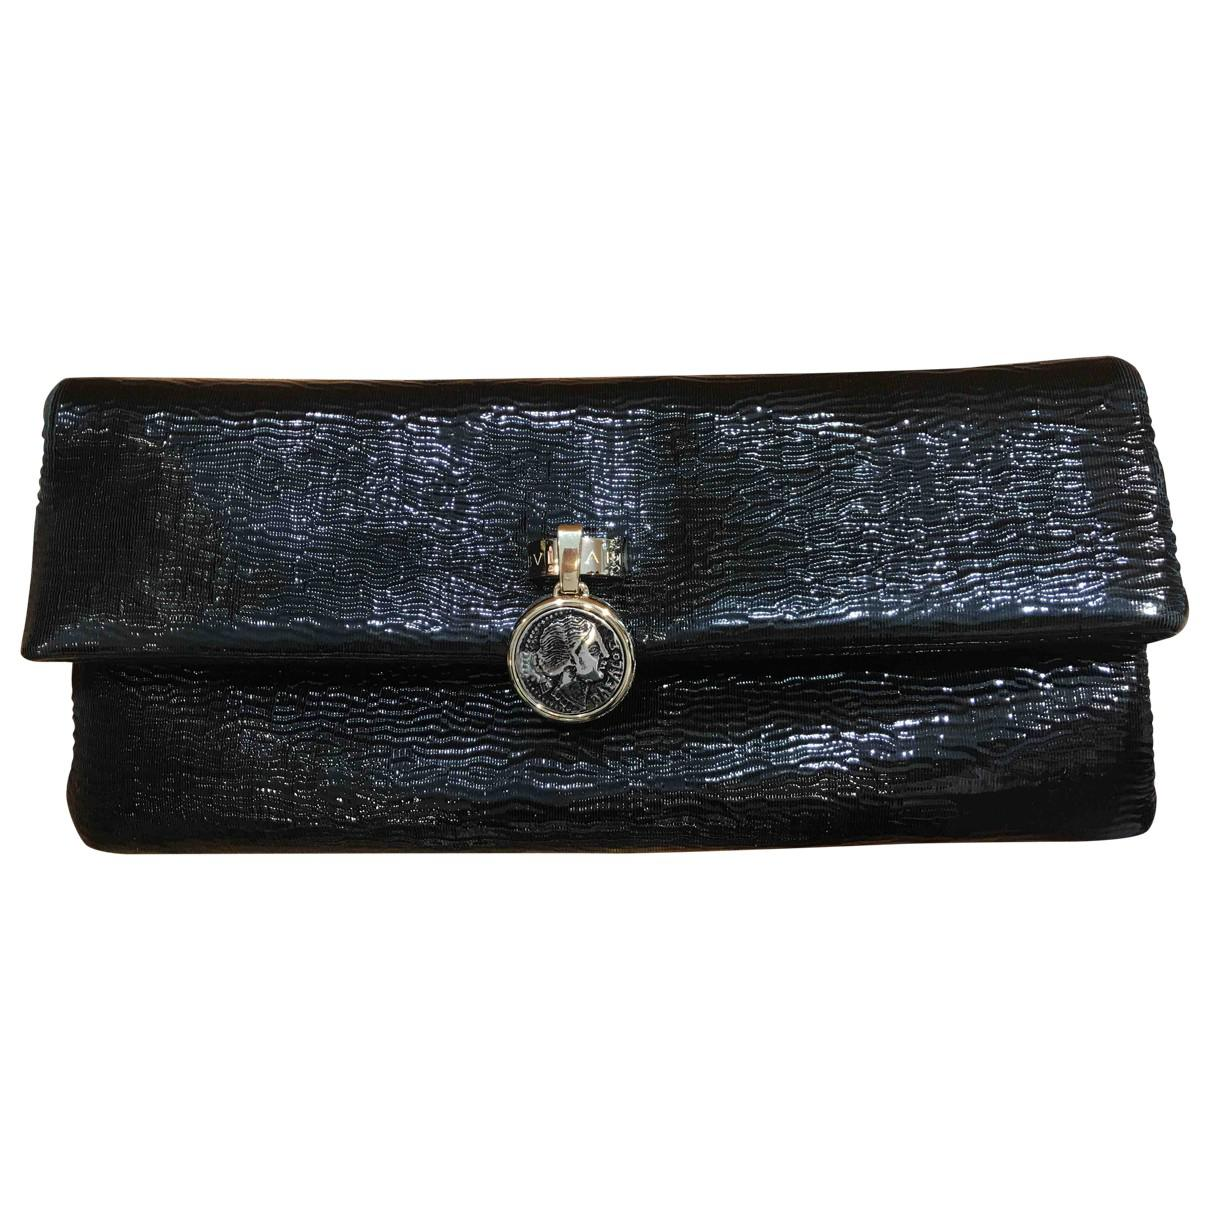 Pre-owned - Clutch bag Rochas MbwJq